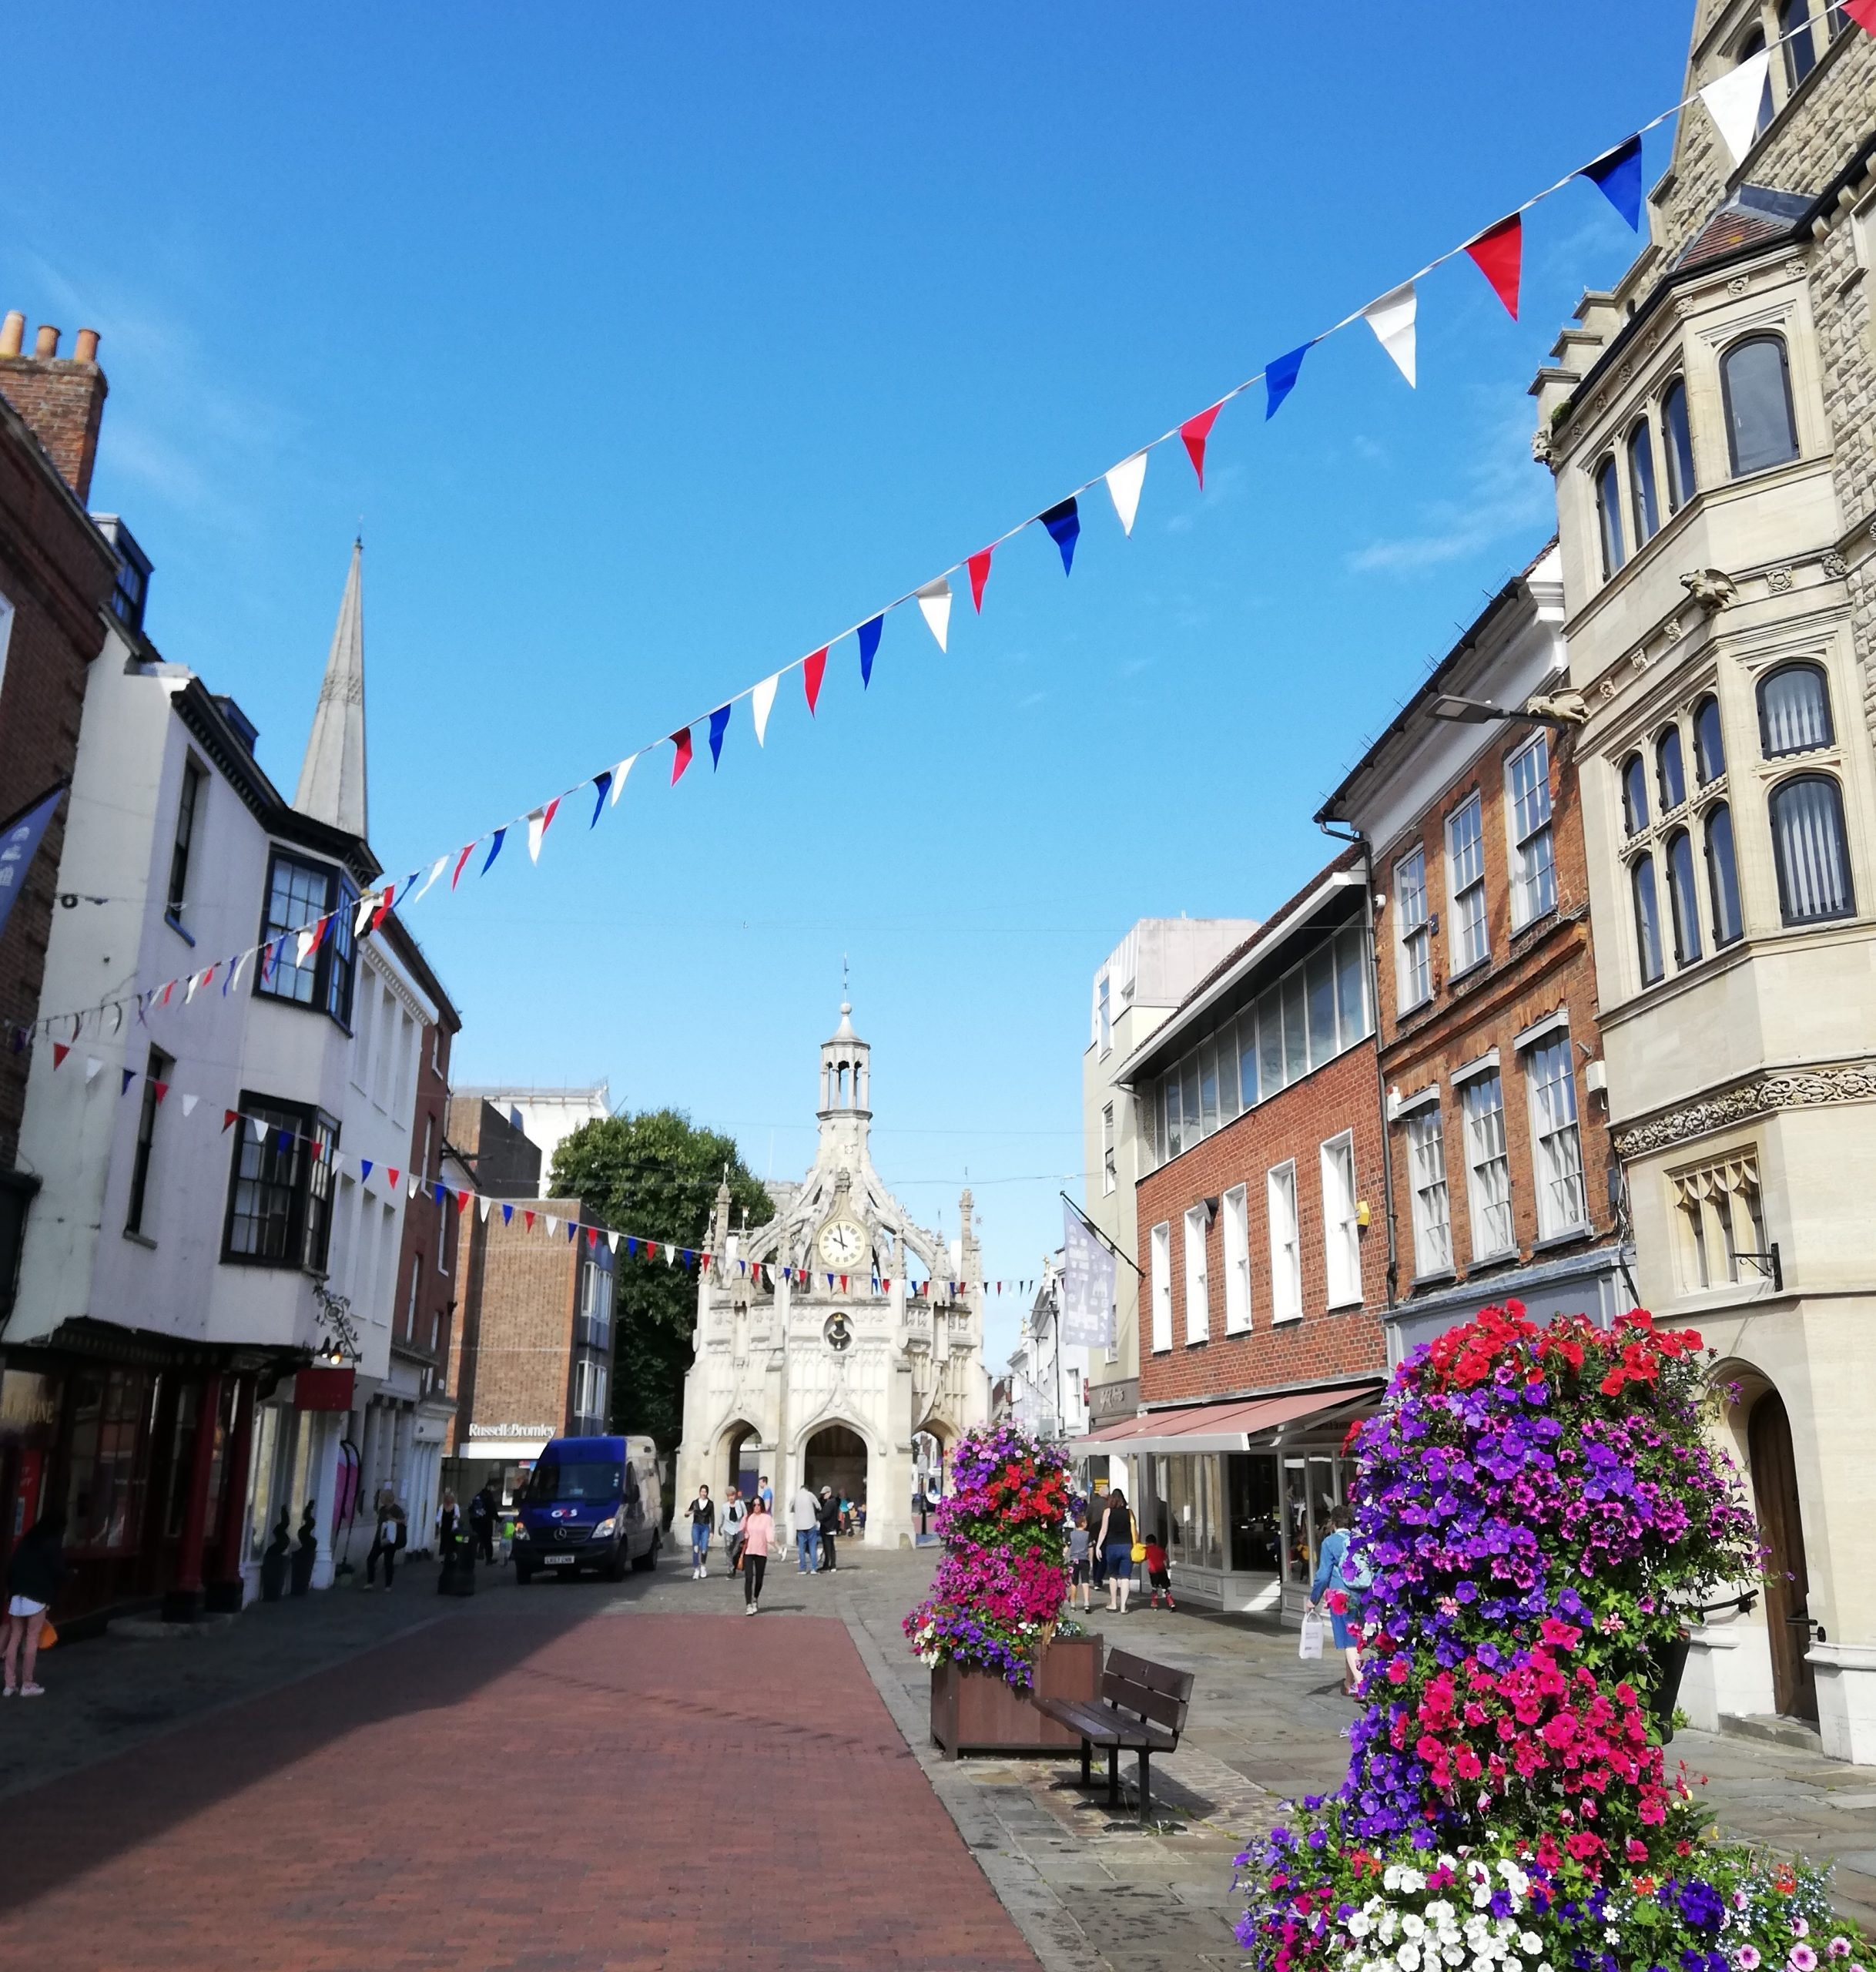 East Street in Chichester